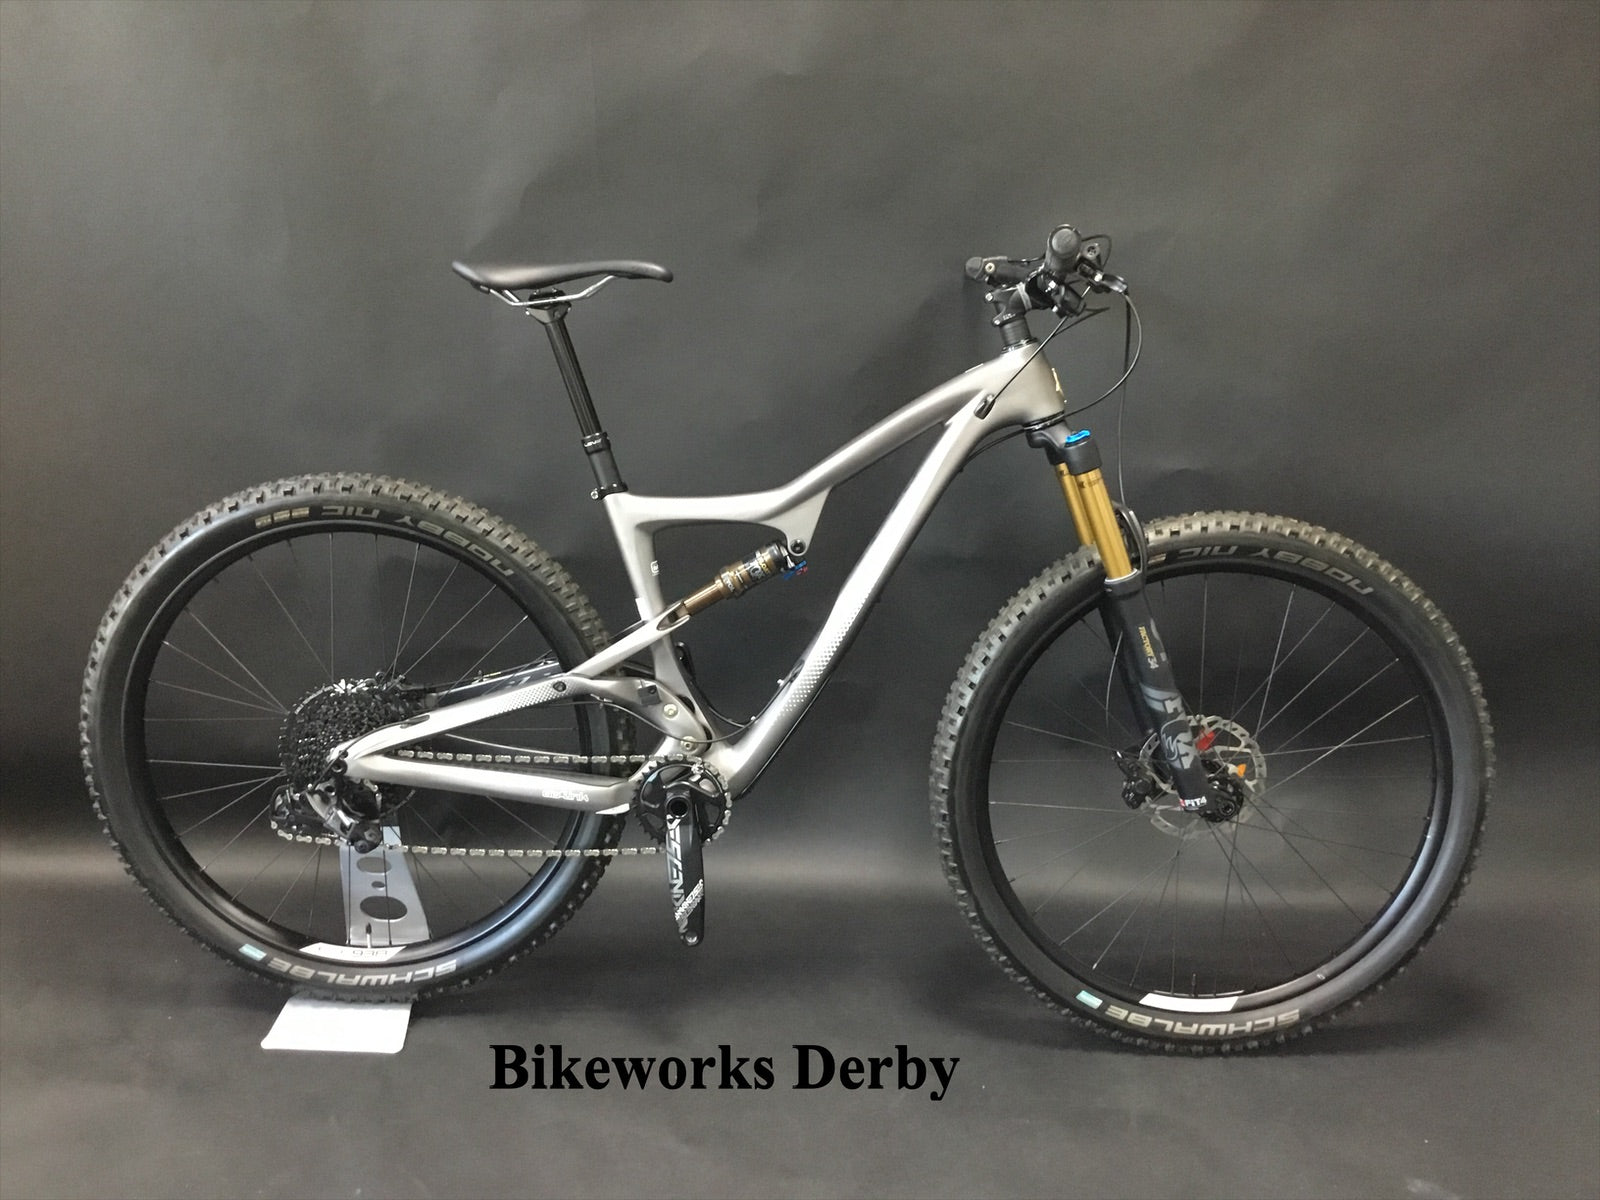 IBIS Ripley LS V3.0 Full Suspension Carbon MTB 2018 As New! Save £2k